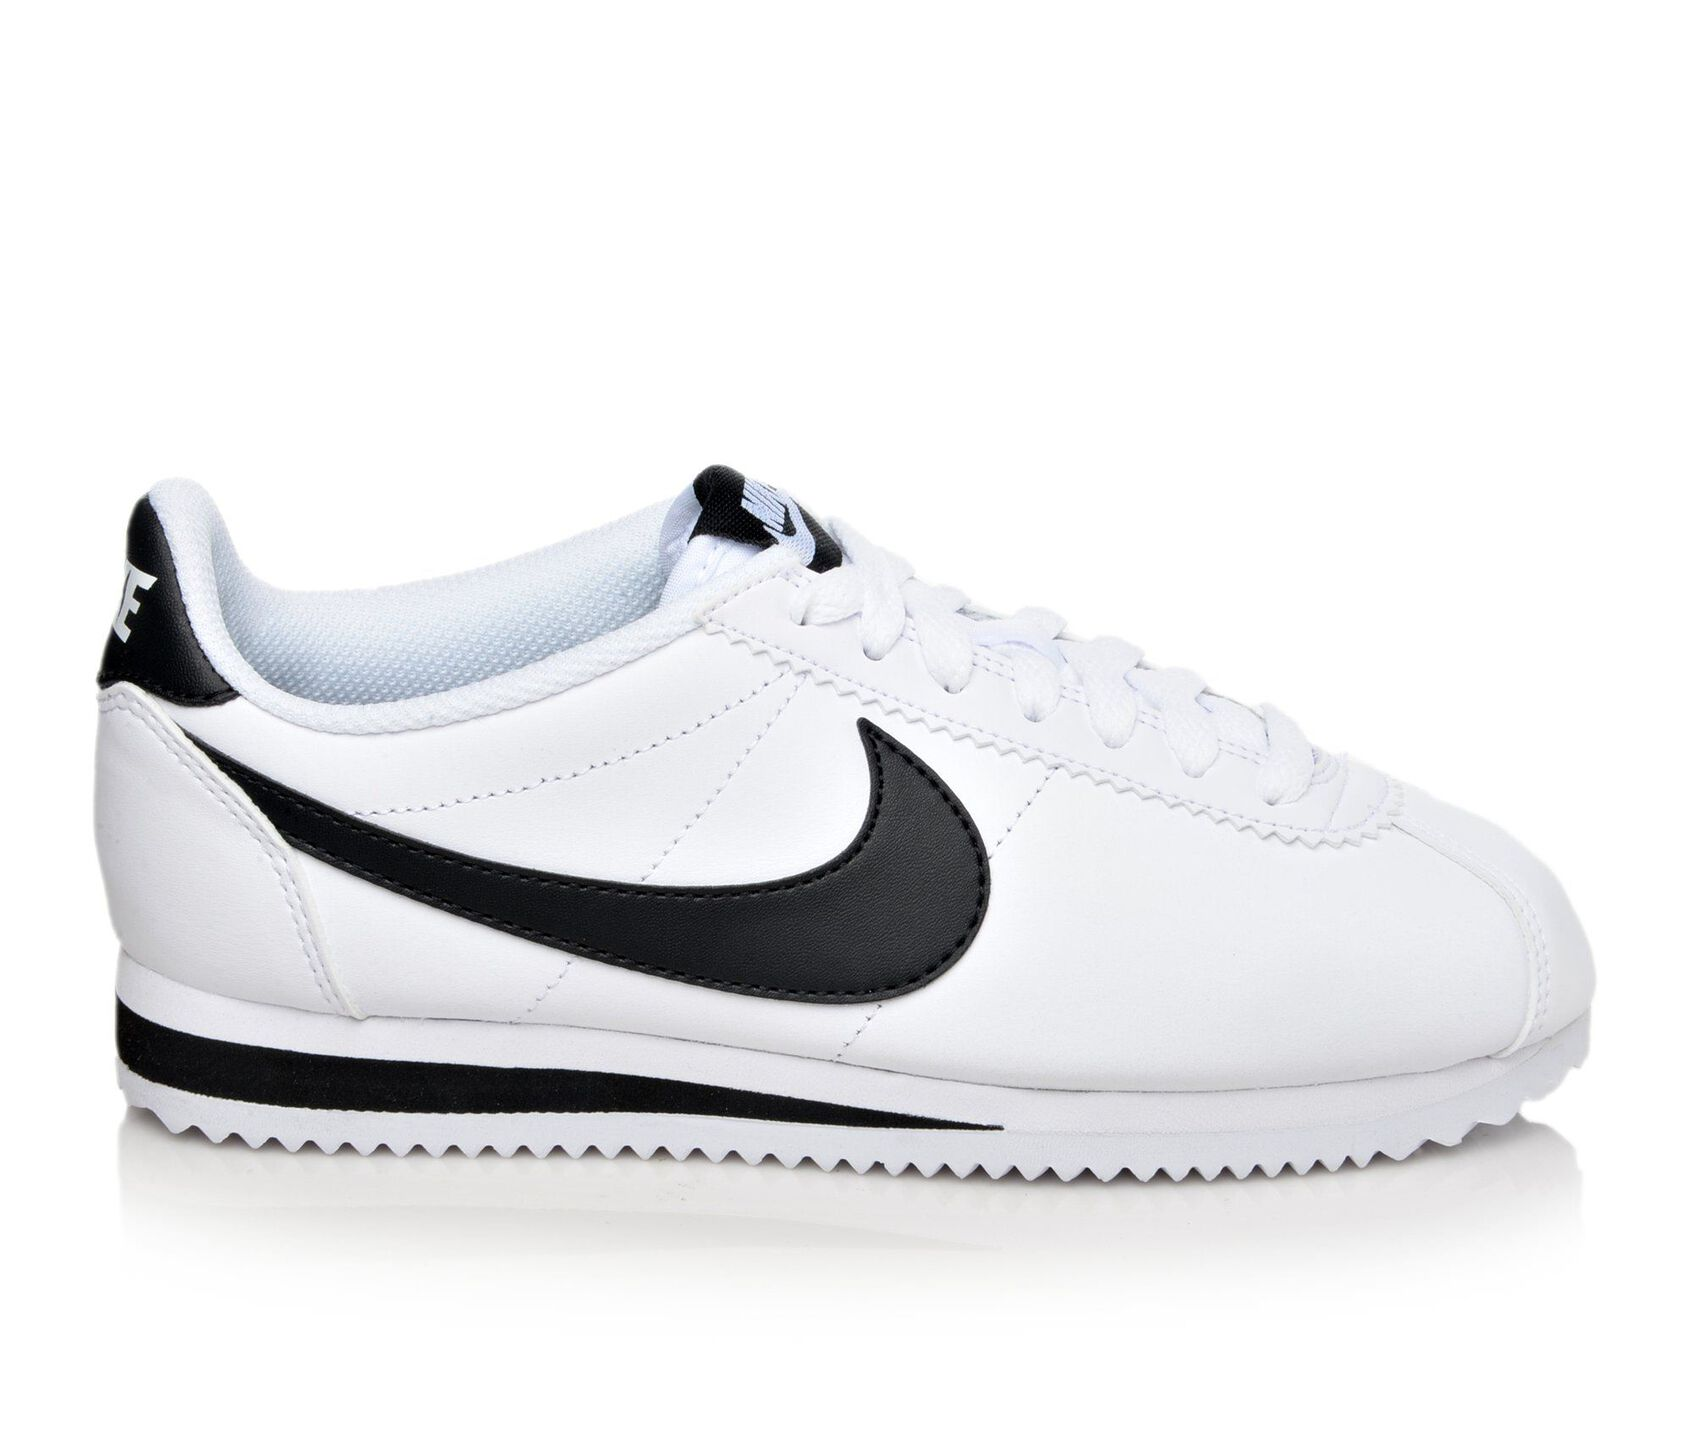 34d1f51a Women's Nike Classic Cortez Leather Sneakers